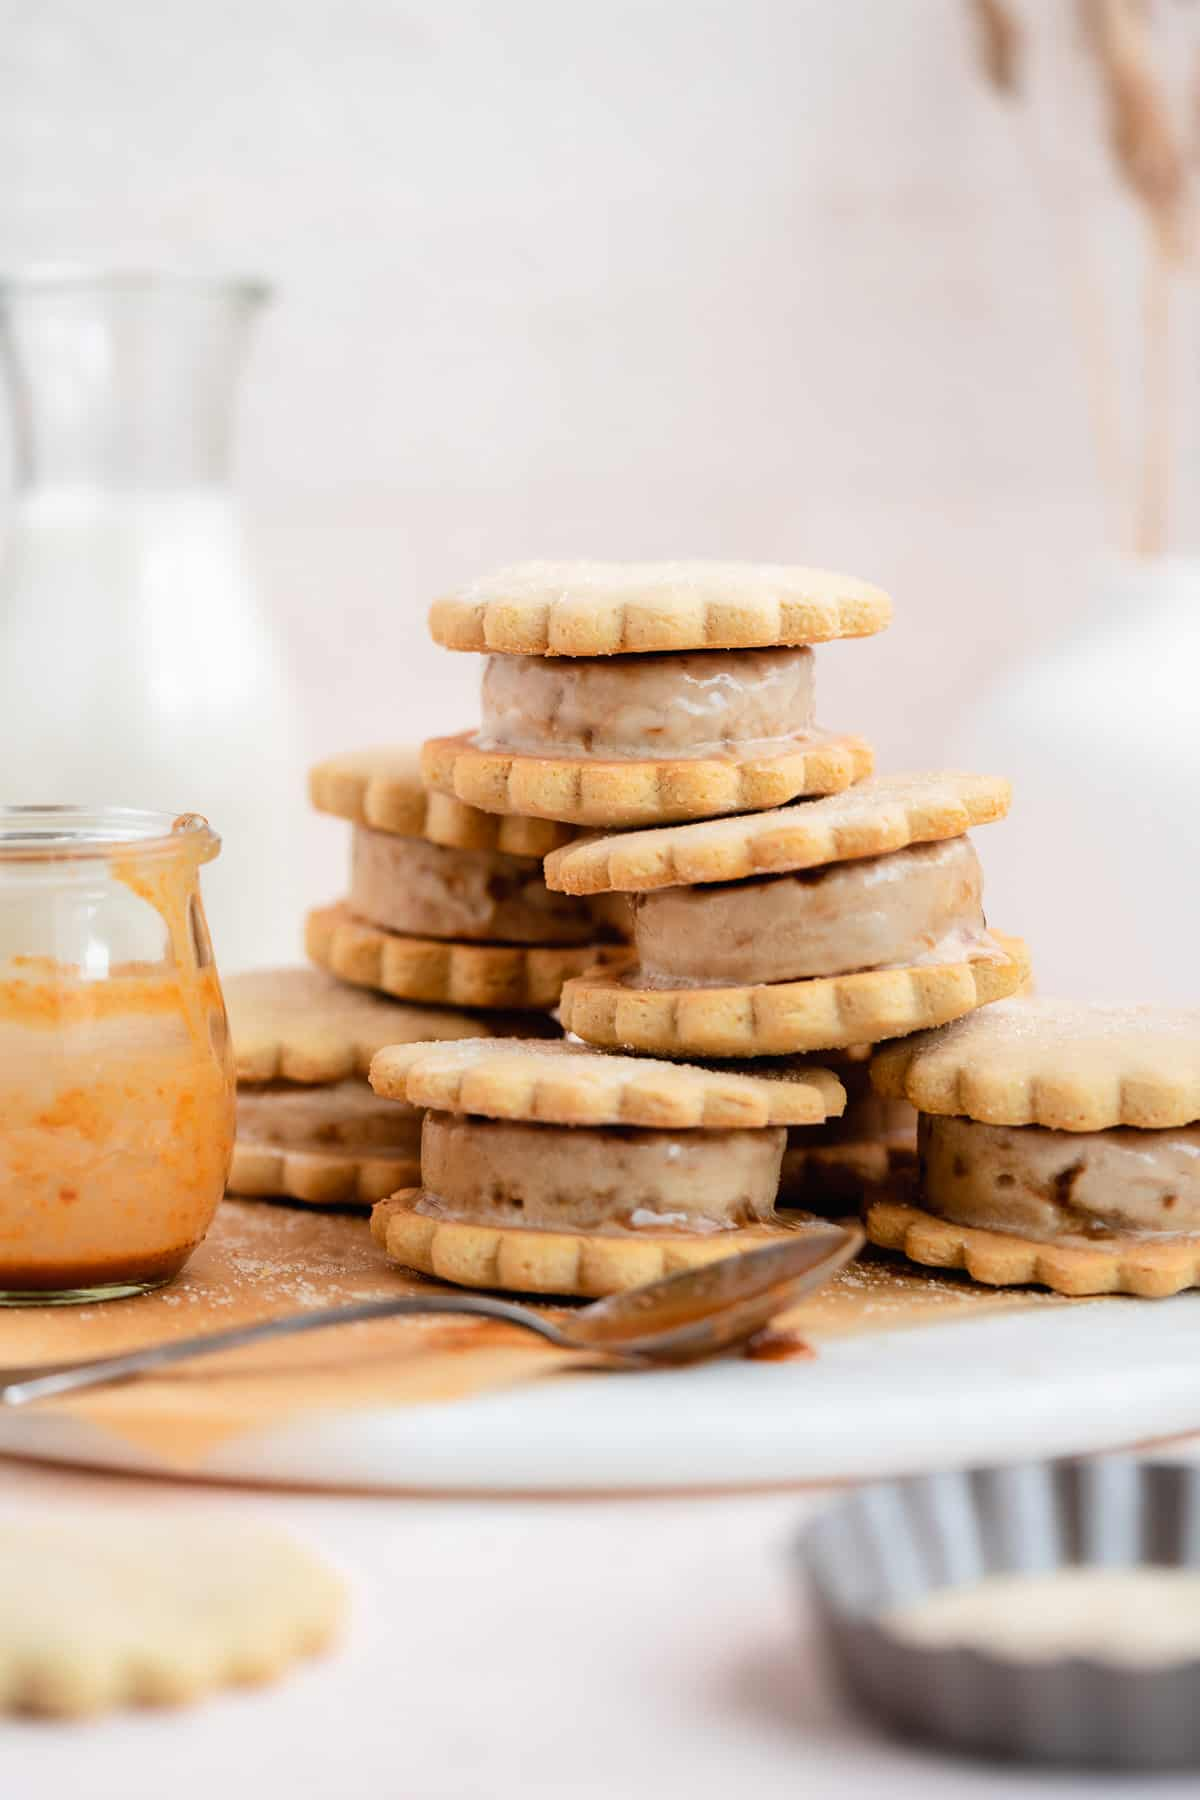 Side view photo of 7 ice cream sandwiches stacked in a pyramid sit on top of parchment paper on a marble slab.   Small clear jar with caramel sauce and silver spoon dipped in caramel sauce are placed nearby.